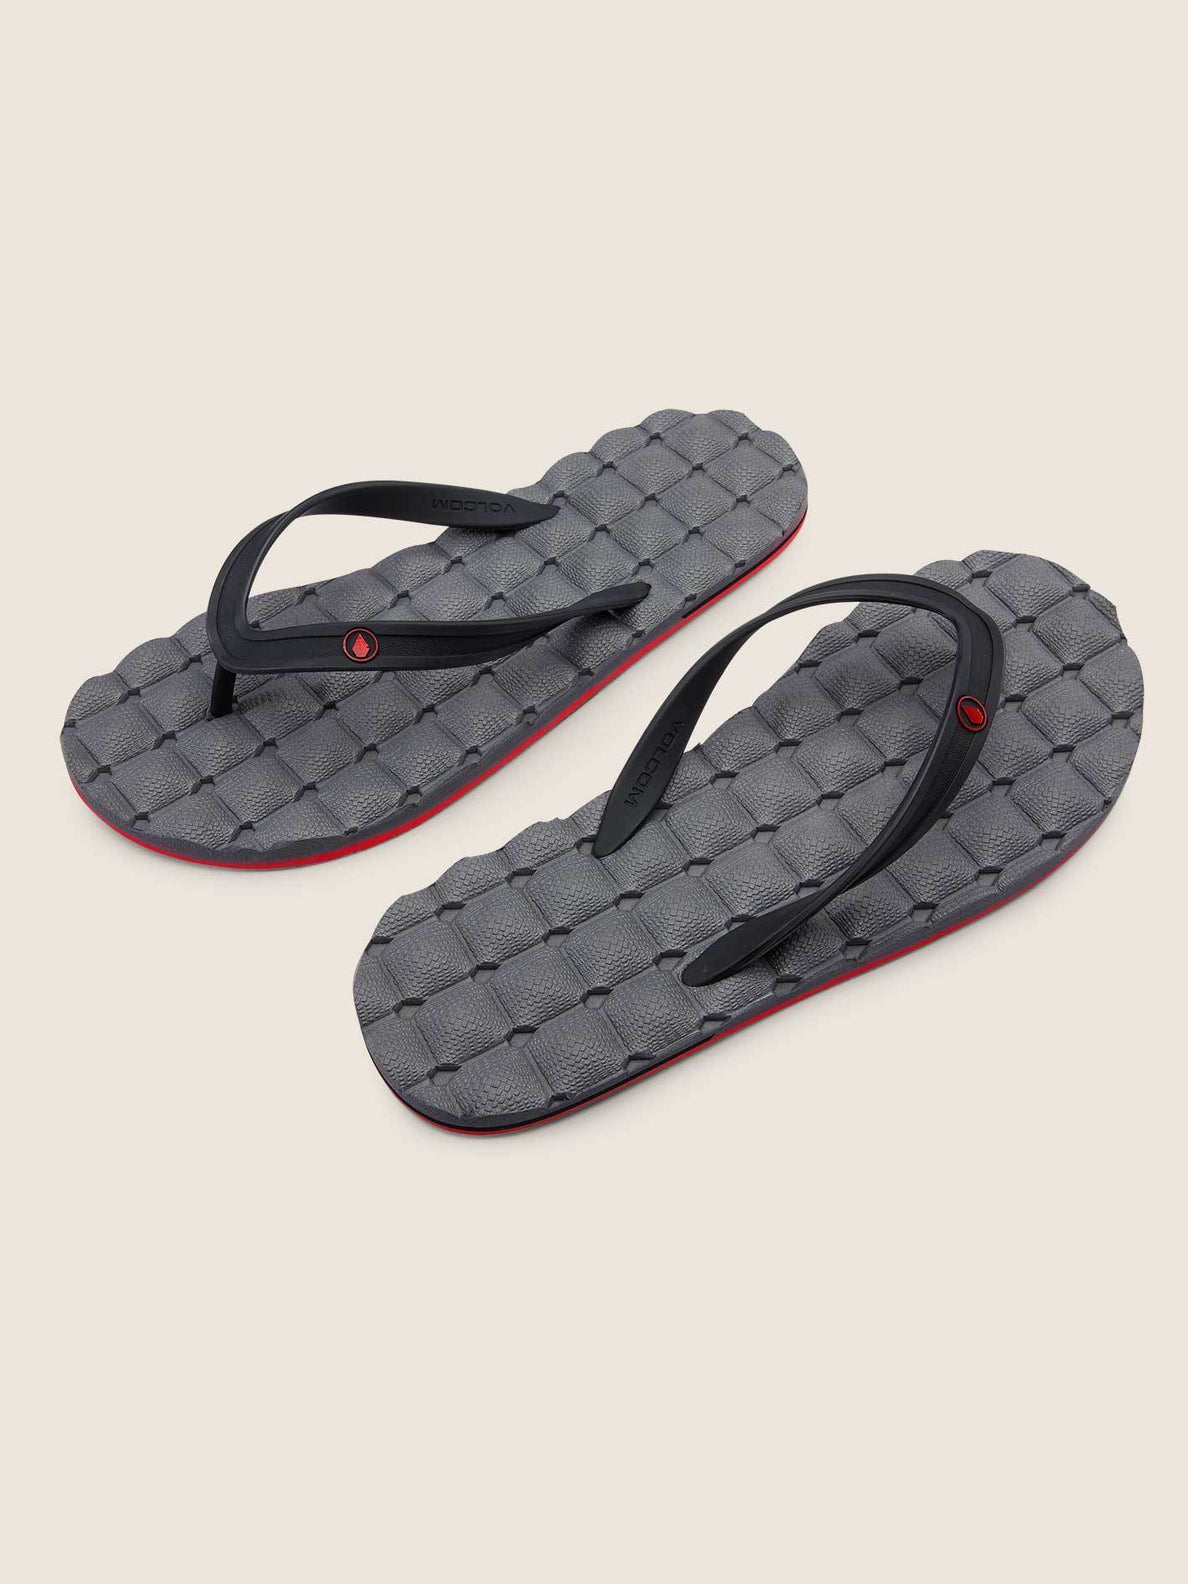 Recliner Rubber 2 Sandals In Pewter, Front View